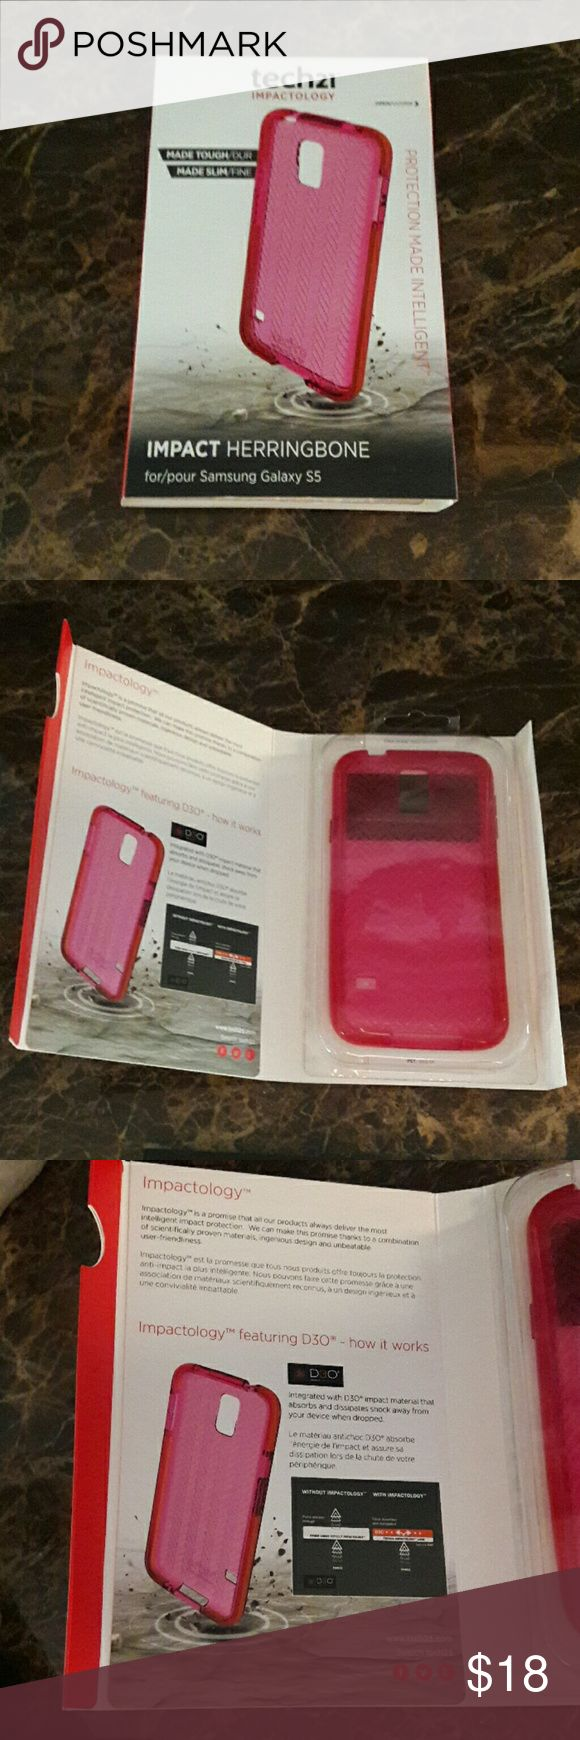 NWT Tech21 Impact Herringbone Pink Galaxy S5 Case Brand Tech21  Fits Samsung Galazy S5 NWT Impactology made Slim  Originally $34.99 purchased from T-Mobile  Pink Herringbone gel type Phone case Tech21 Accessories Phone Cases